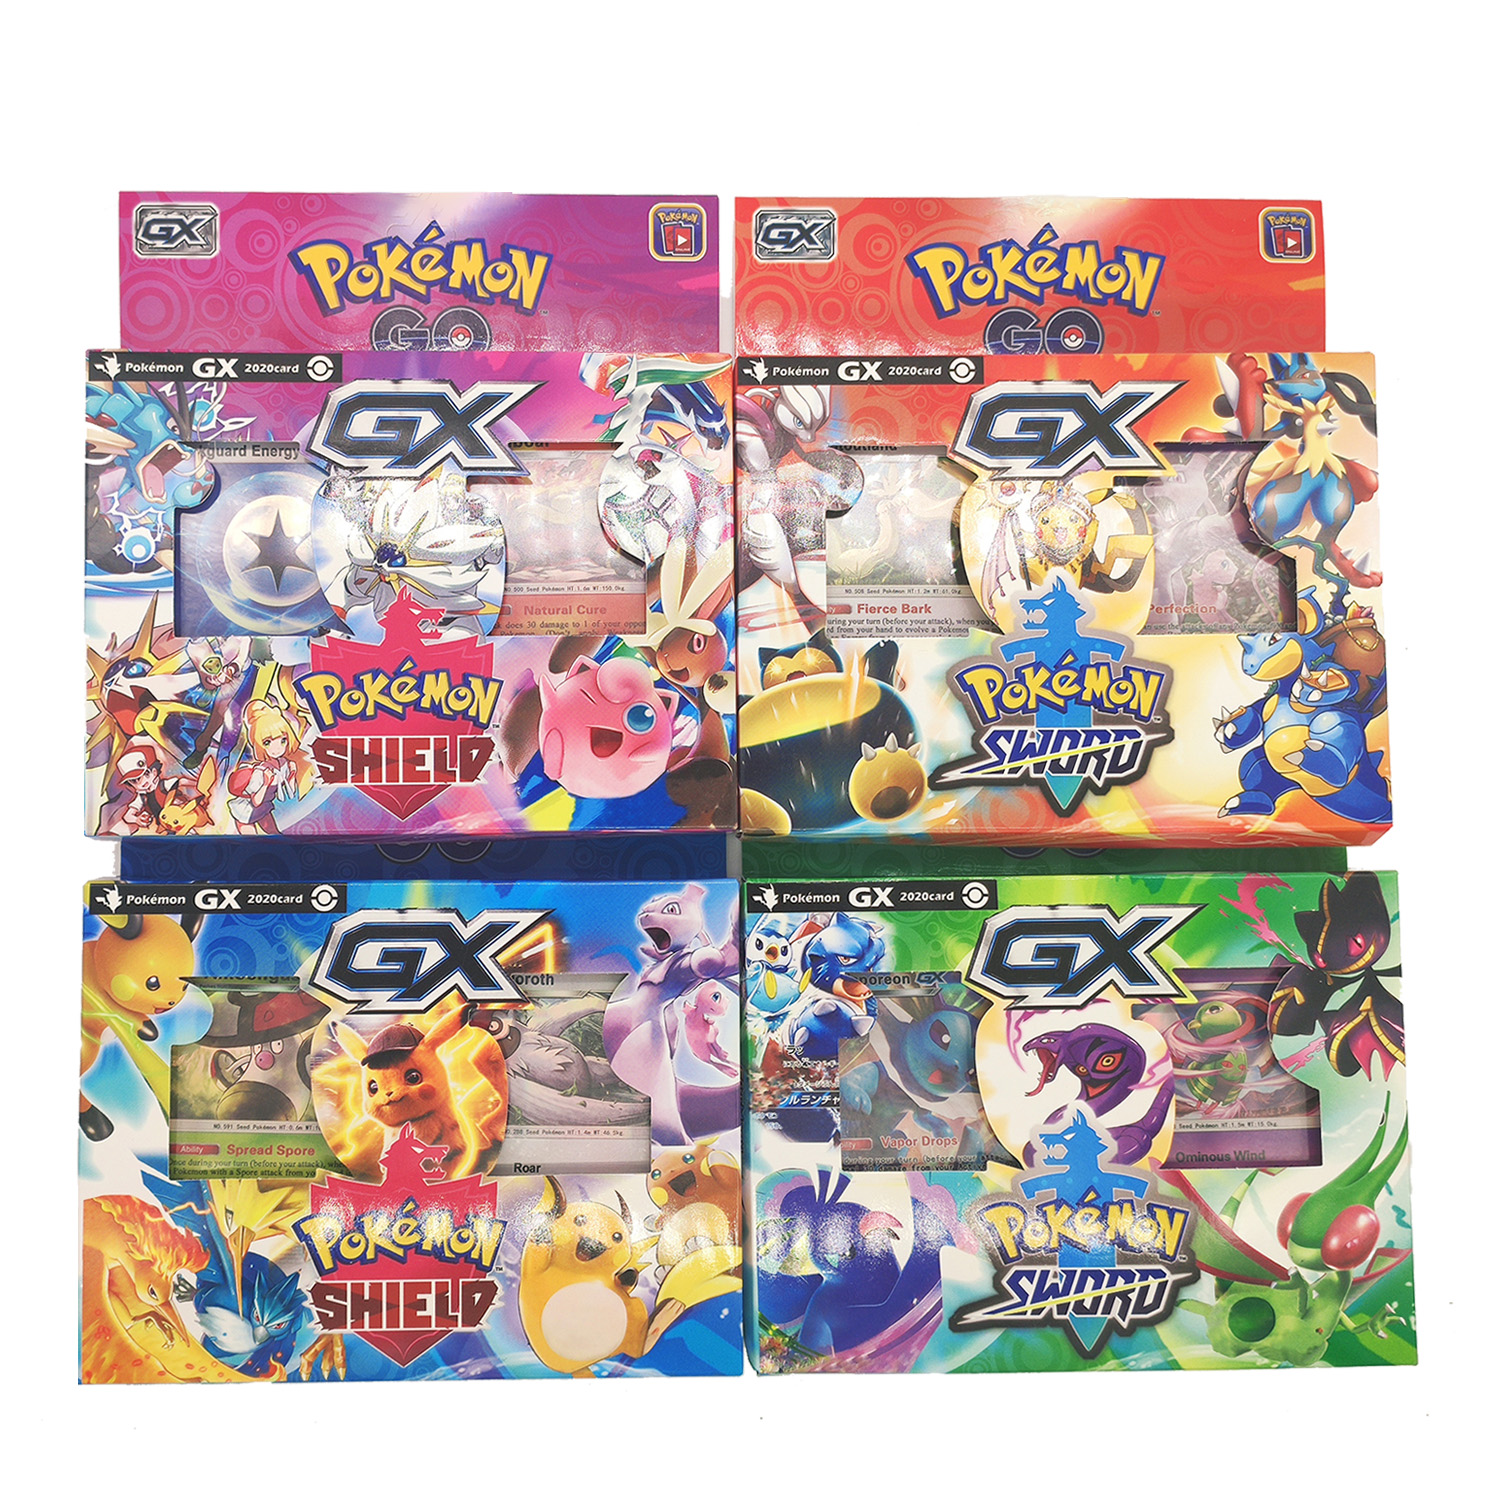 56pcs/set Pokemon TAKARA TOMY Battle Toys Hobbies Hobby Collectibles Game Collection Anime Cards for Children